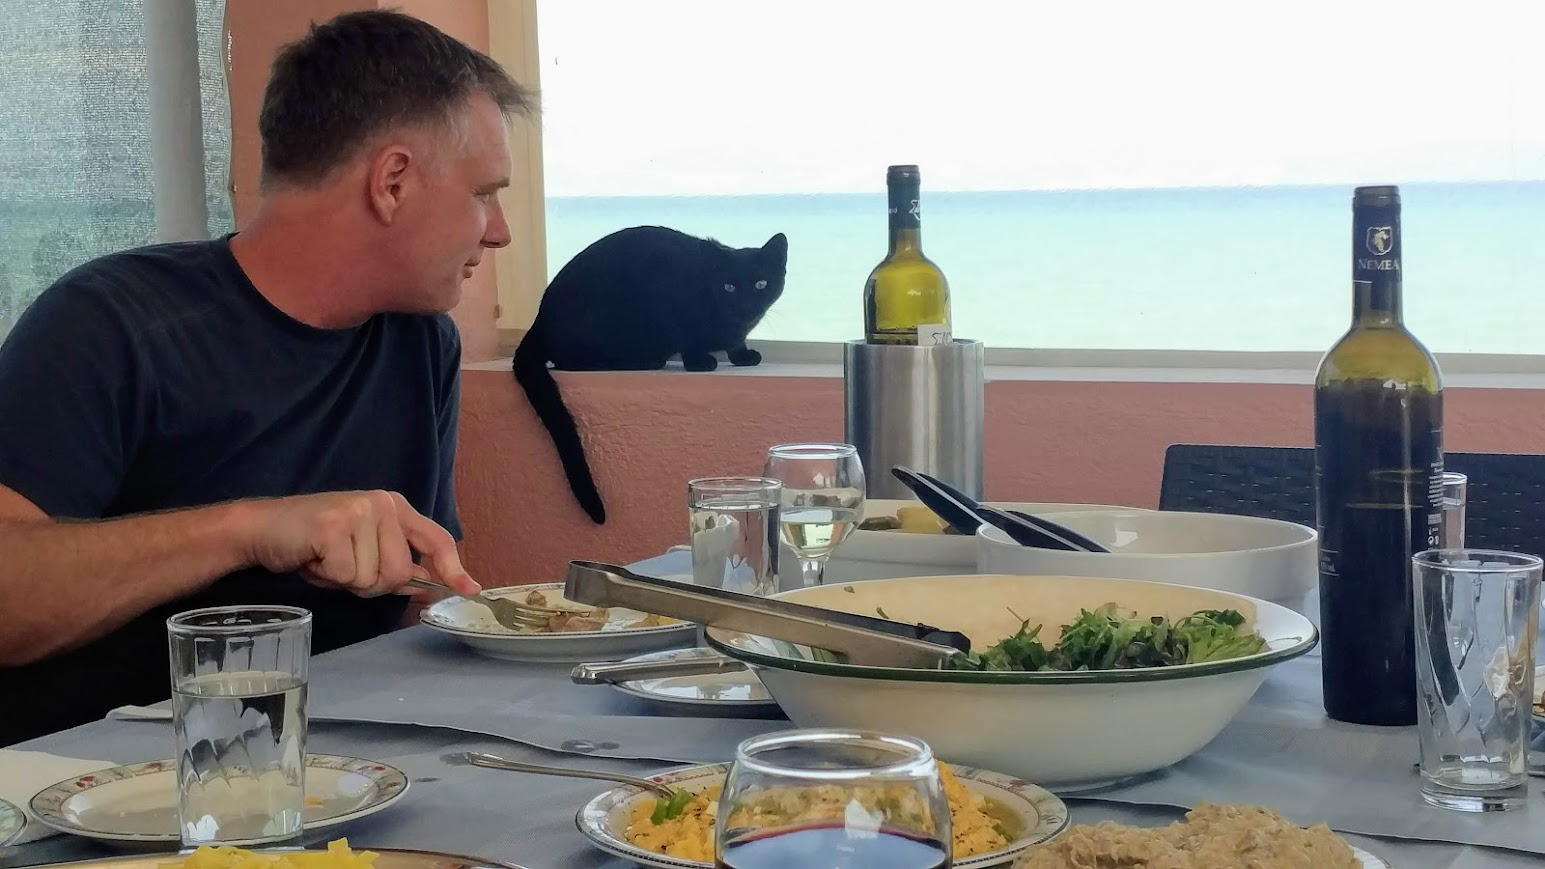 The ever present Greek cats, joining us for our dinner.